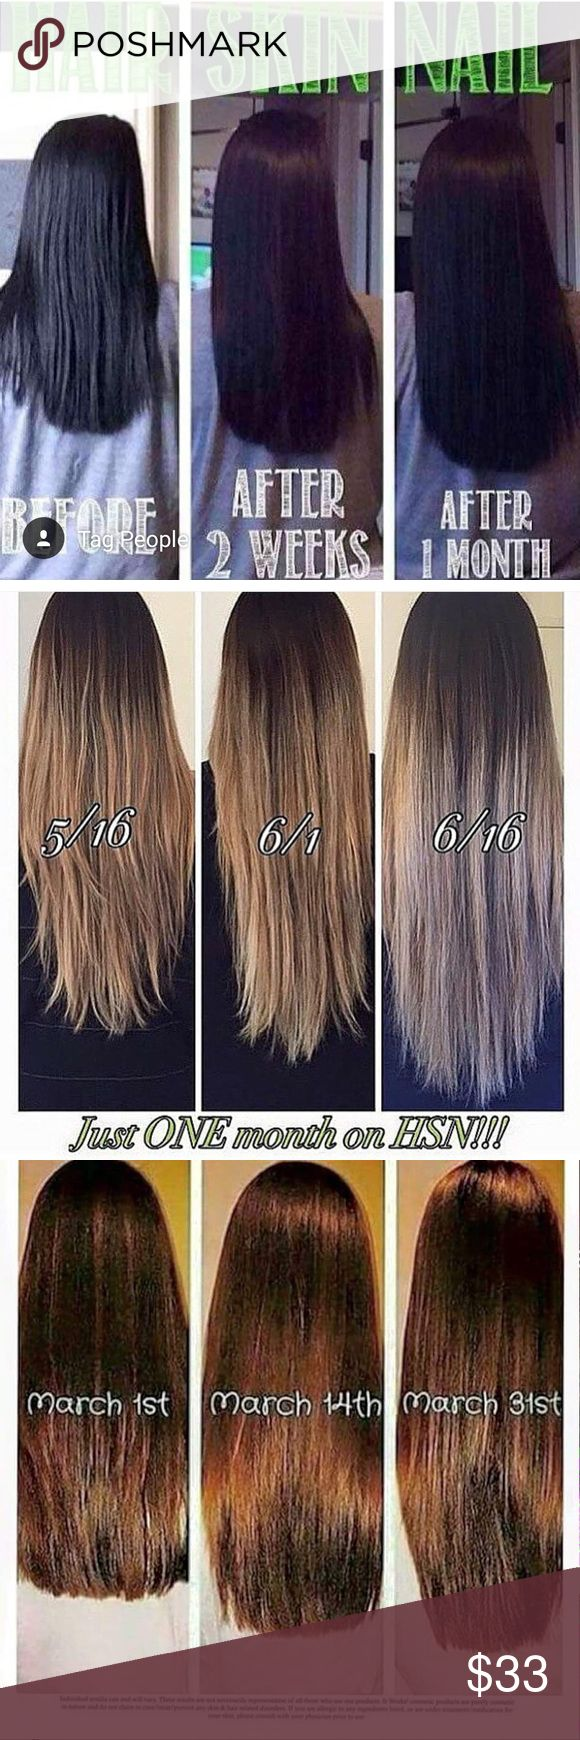 The  Best Biotin Results Ideas On Pinterest - How much biotin to take for hair growth